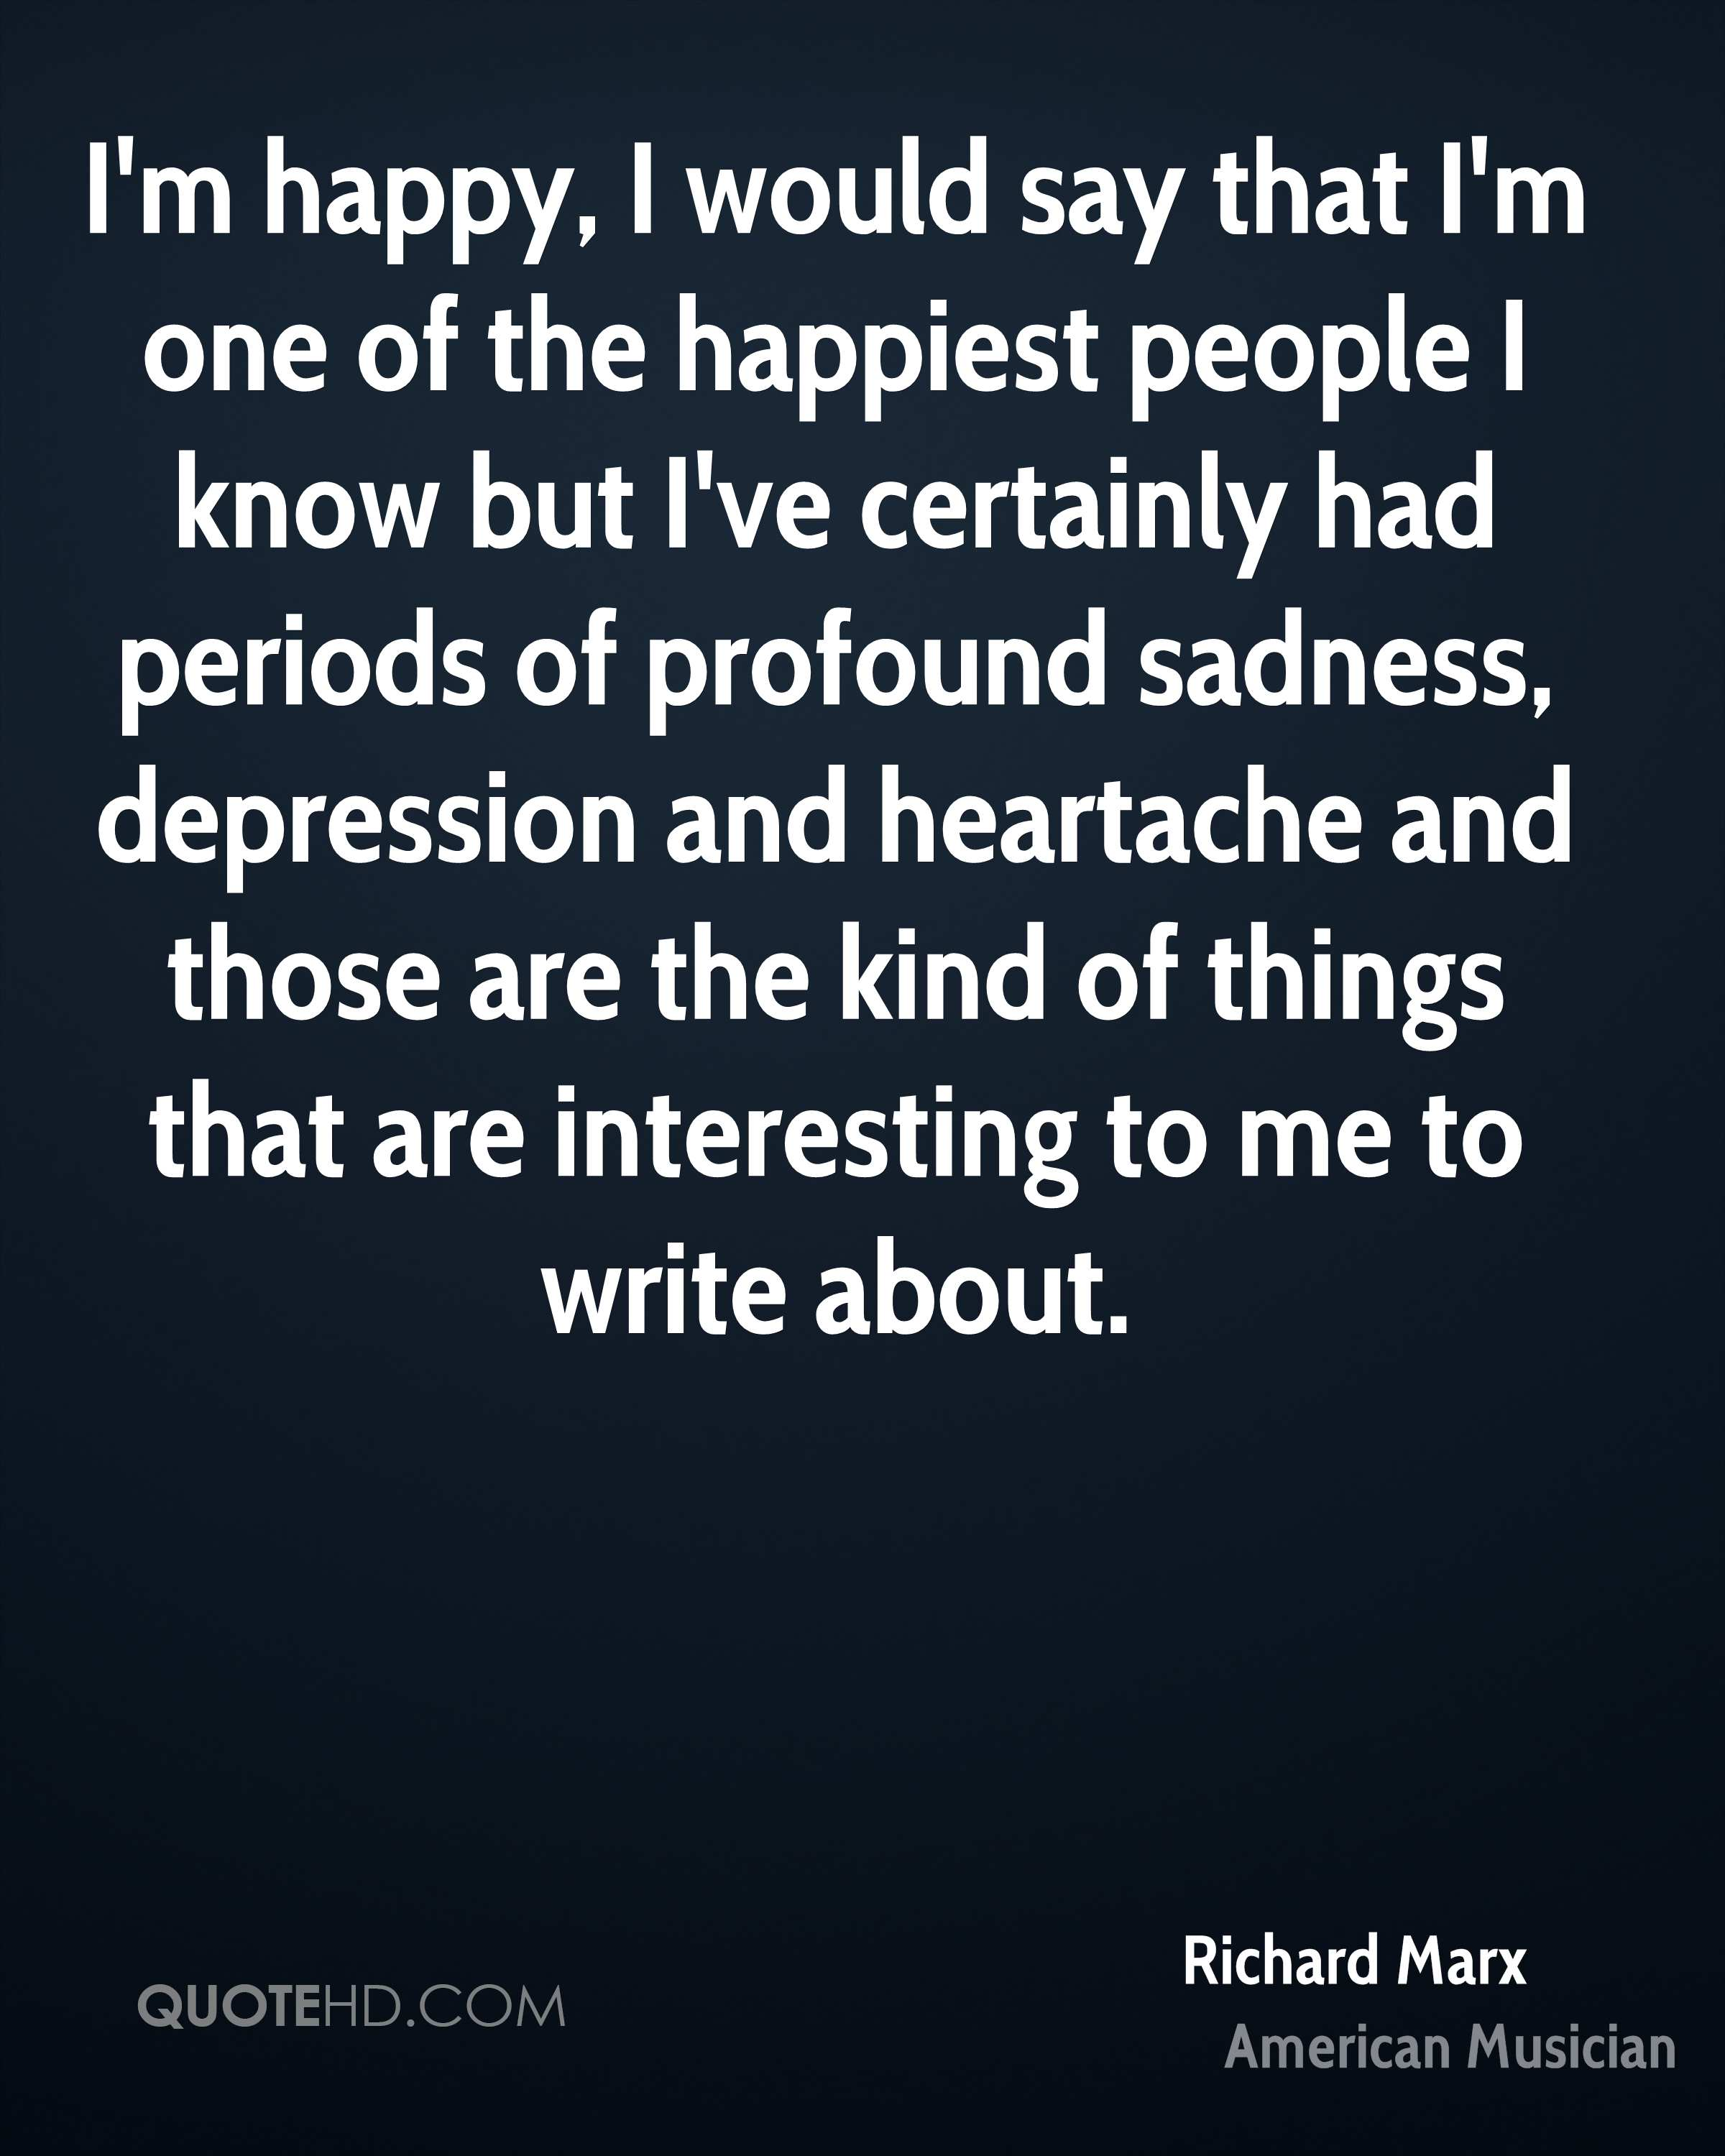 I'm happy, I would say that I'm one of the happiest people I know but I've certainly had periods of profound sadness, depression and heartache and those are the kind of things that are interesting to me to write about.